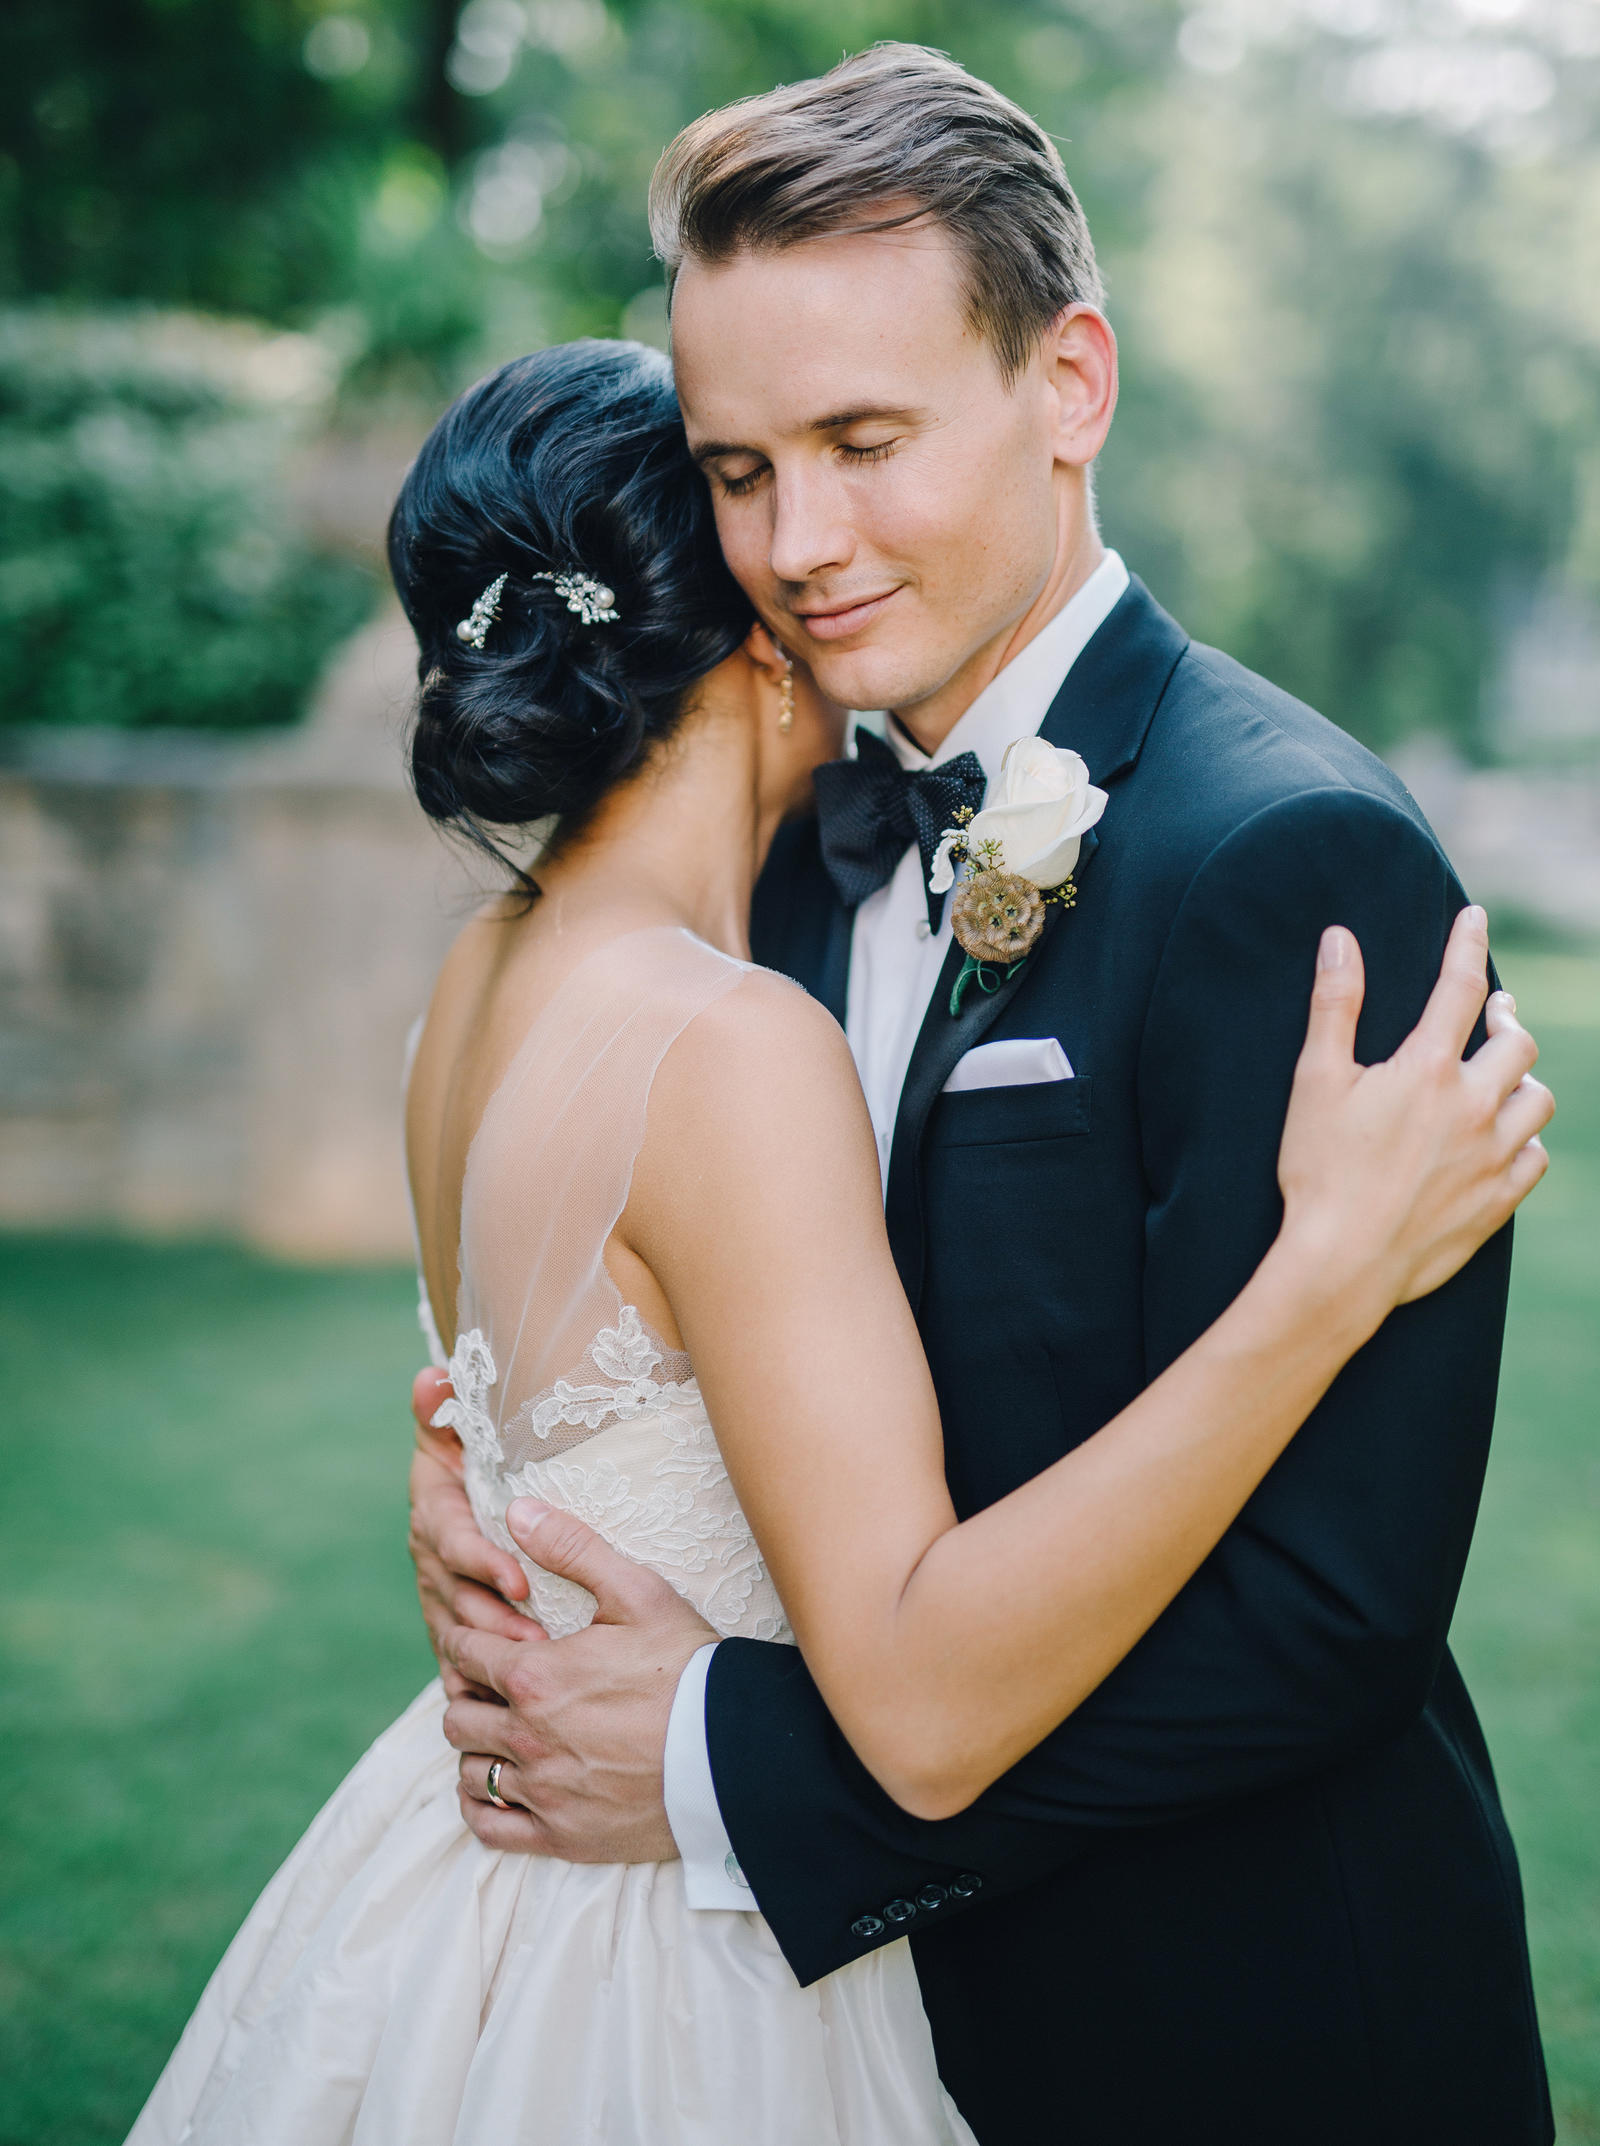 Wedding Photography | A bride and groom hold each other. The bride rests her head on the grooms shoulder.